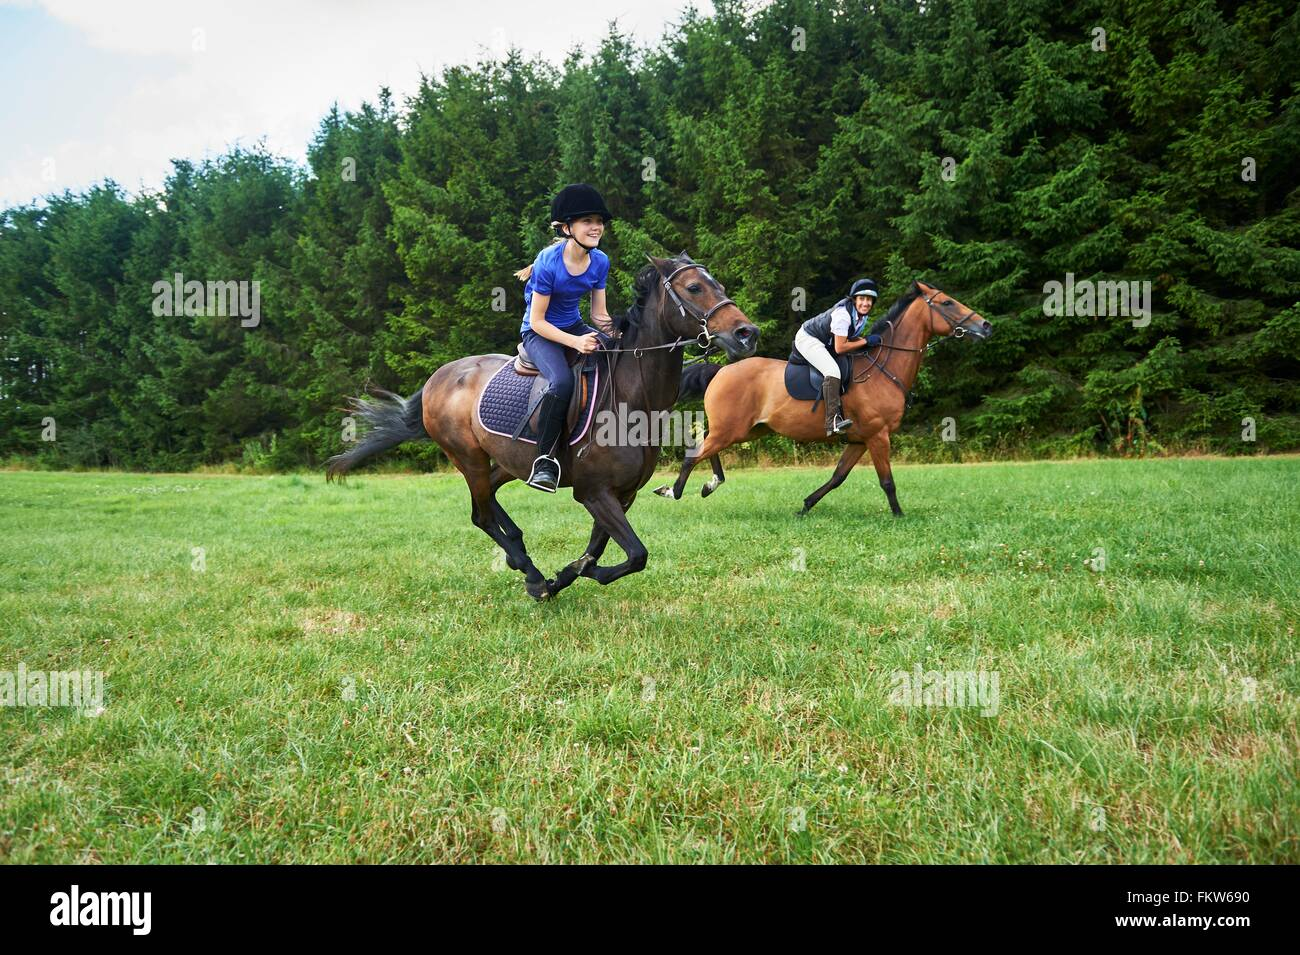 Side view of girl and mature woman wearing riding hats galloping on horseback - Stock Image